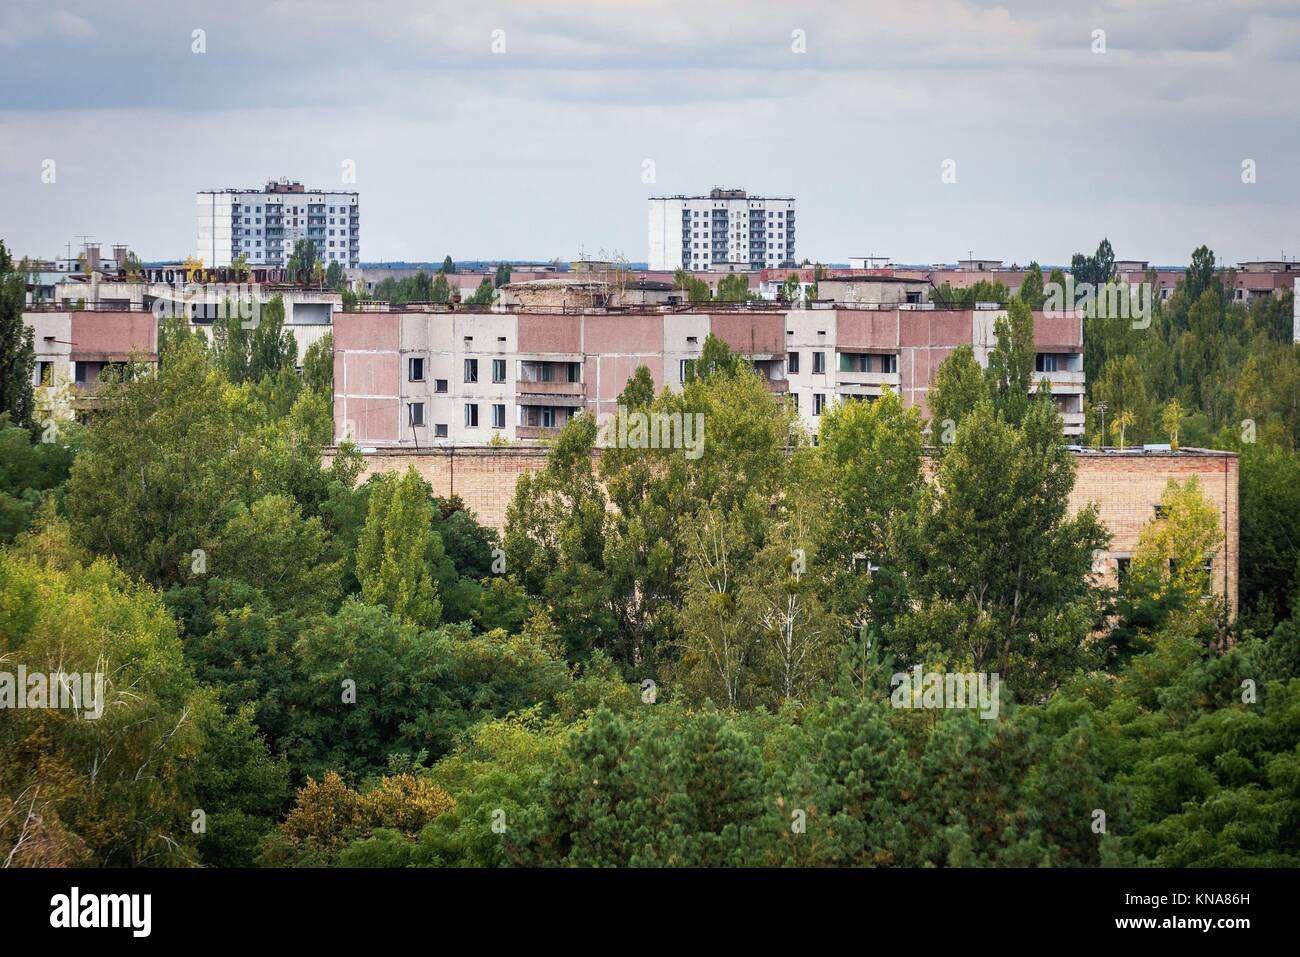 Pripyat ghost city of Chernobyl Nuclear Power Plant Zone of Alienation around nuclear reactor disaster in Ukraine. - Stock Image